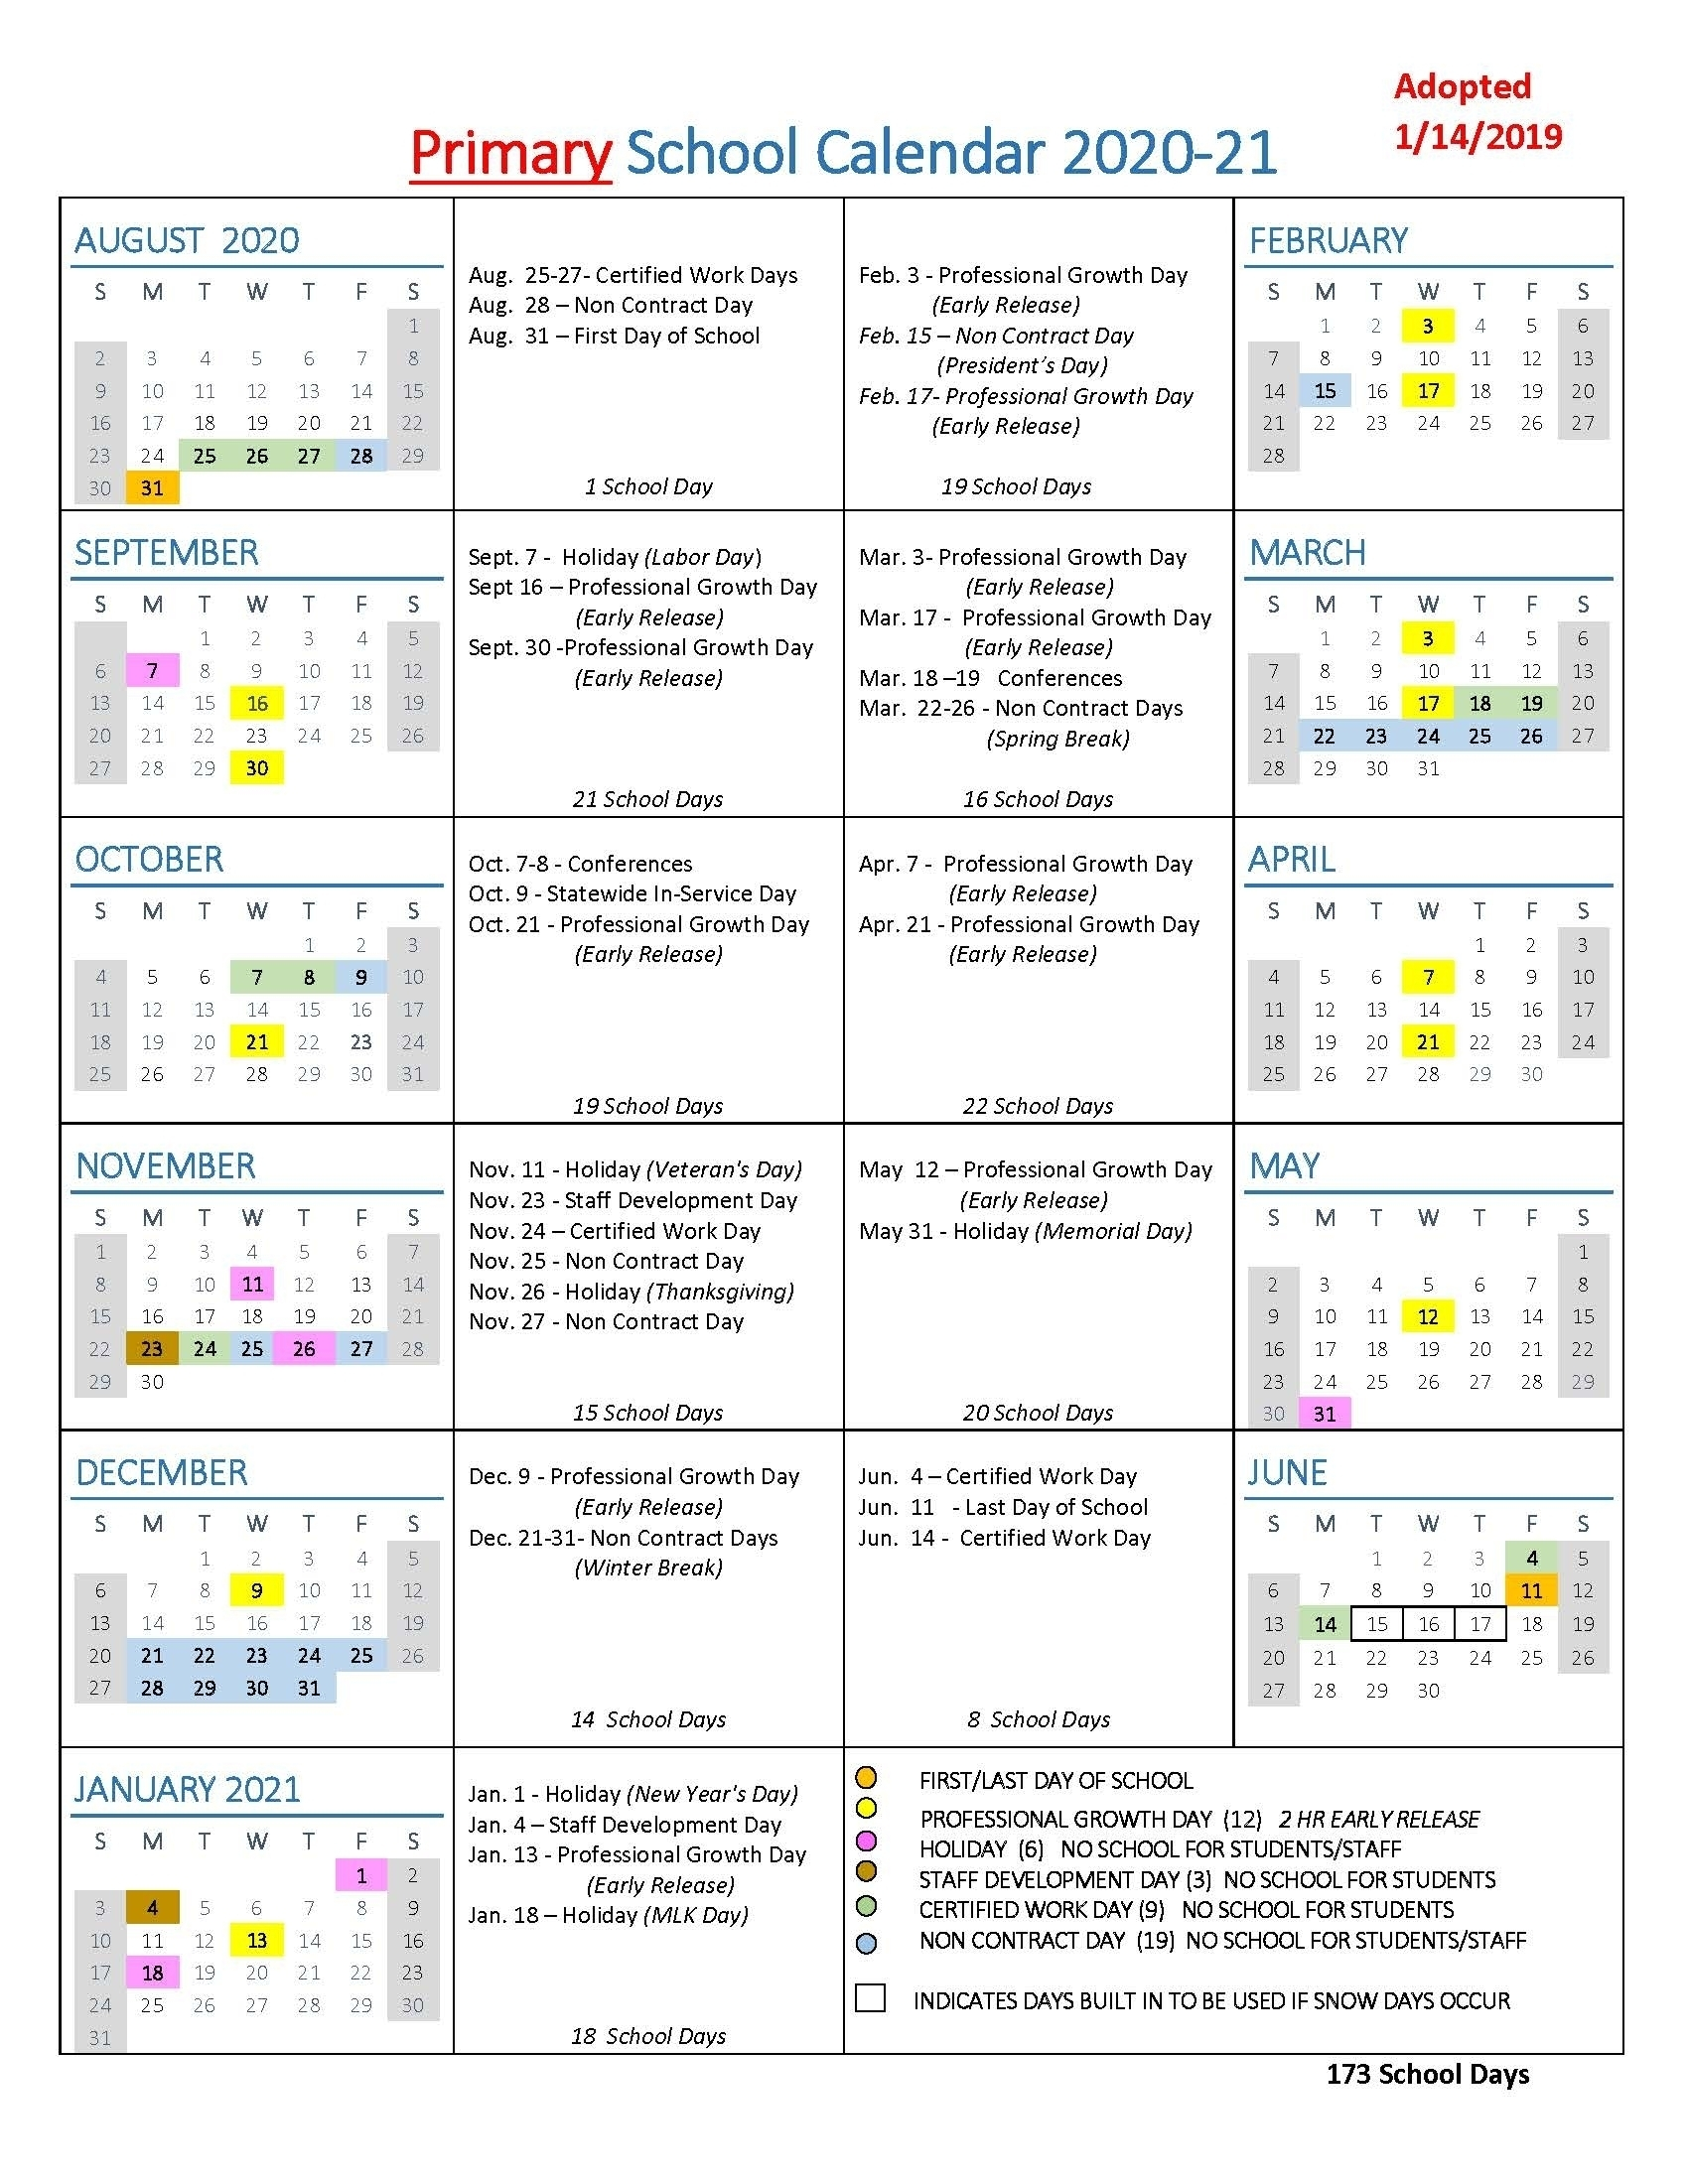 Calendar With All The Special Days In 2020 - Calendar pertaining to Special Calendar Days In 2020